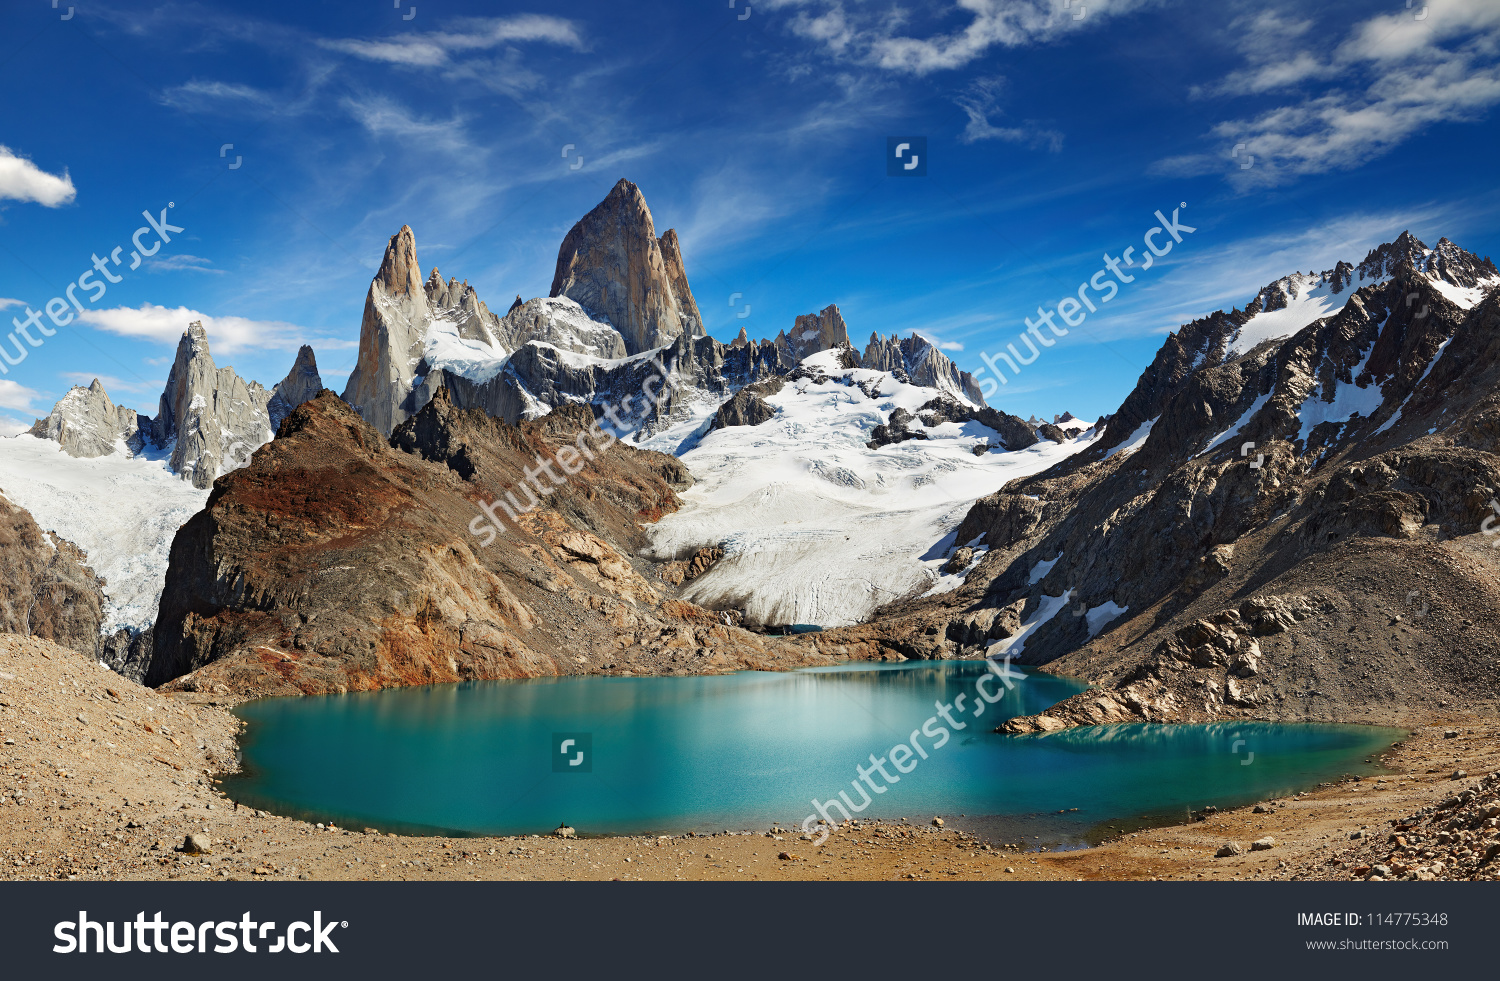 Mount Fitzroy clipart #6, Download drawings